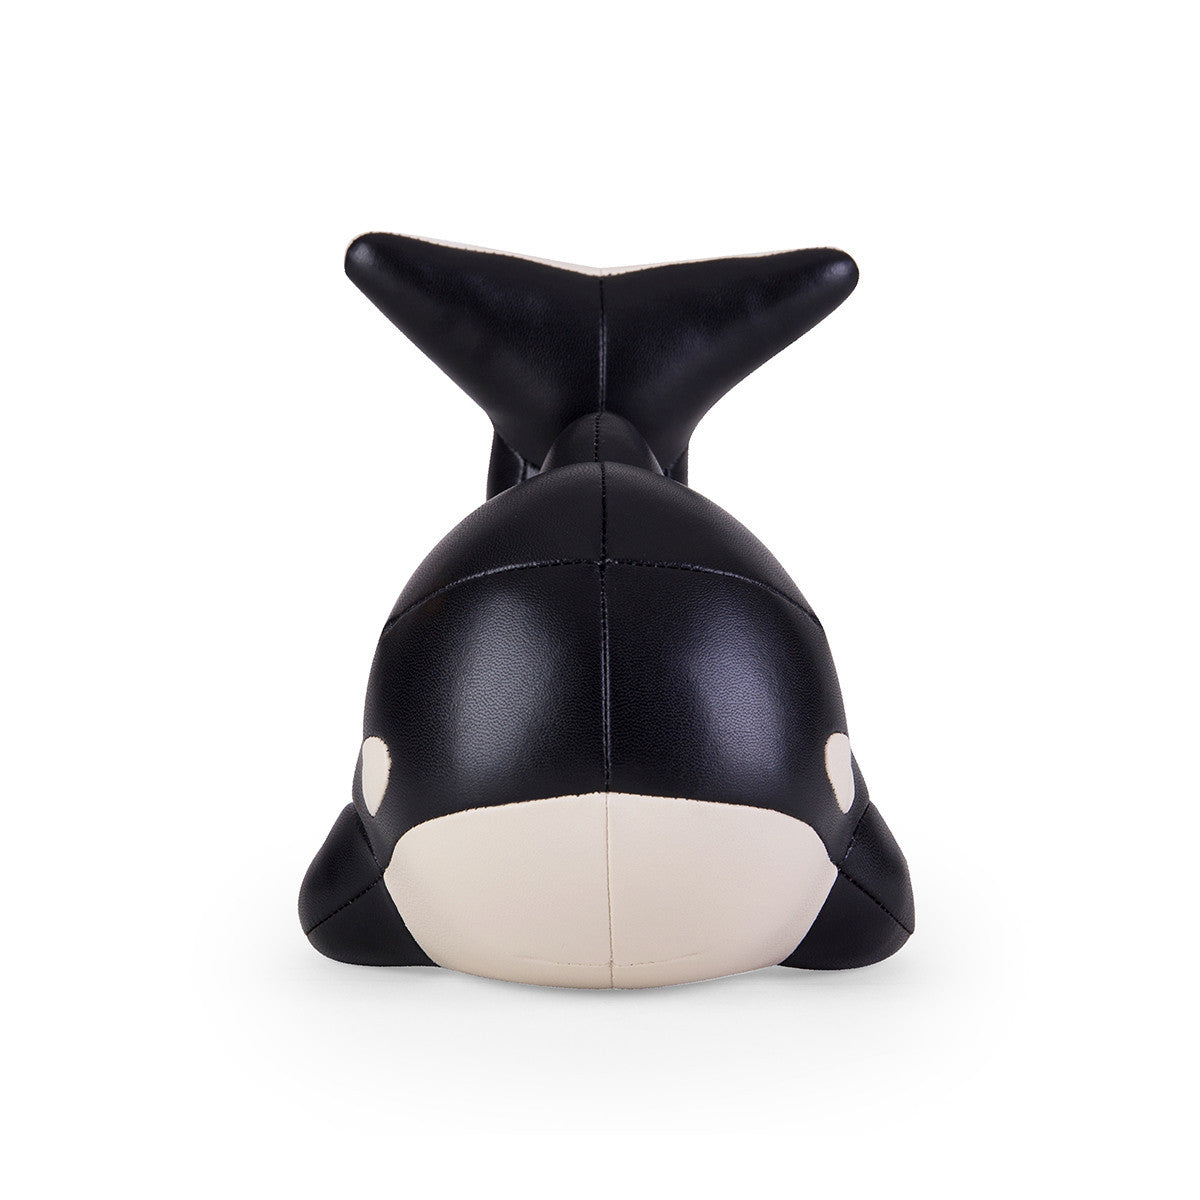 Zuny Bookend Whale Black